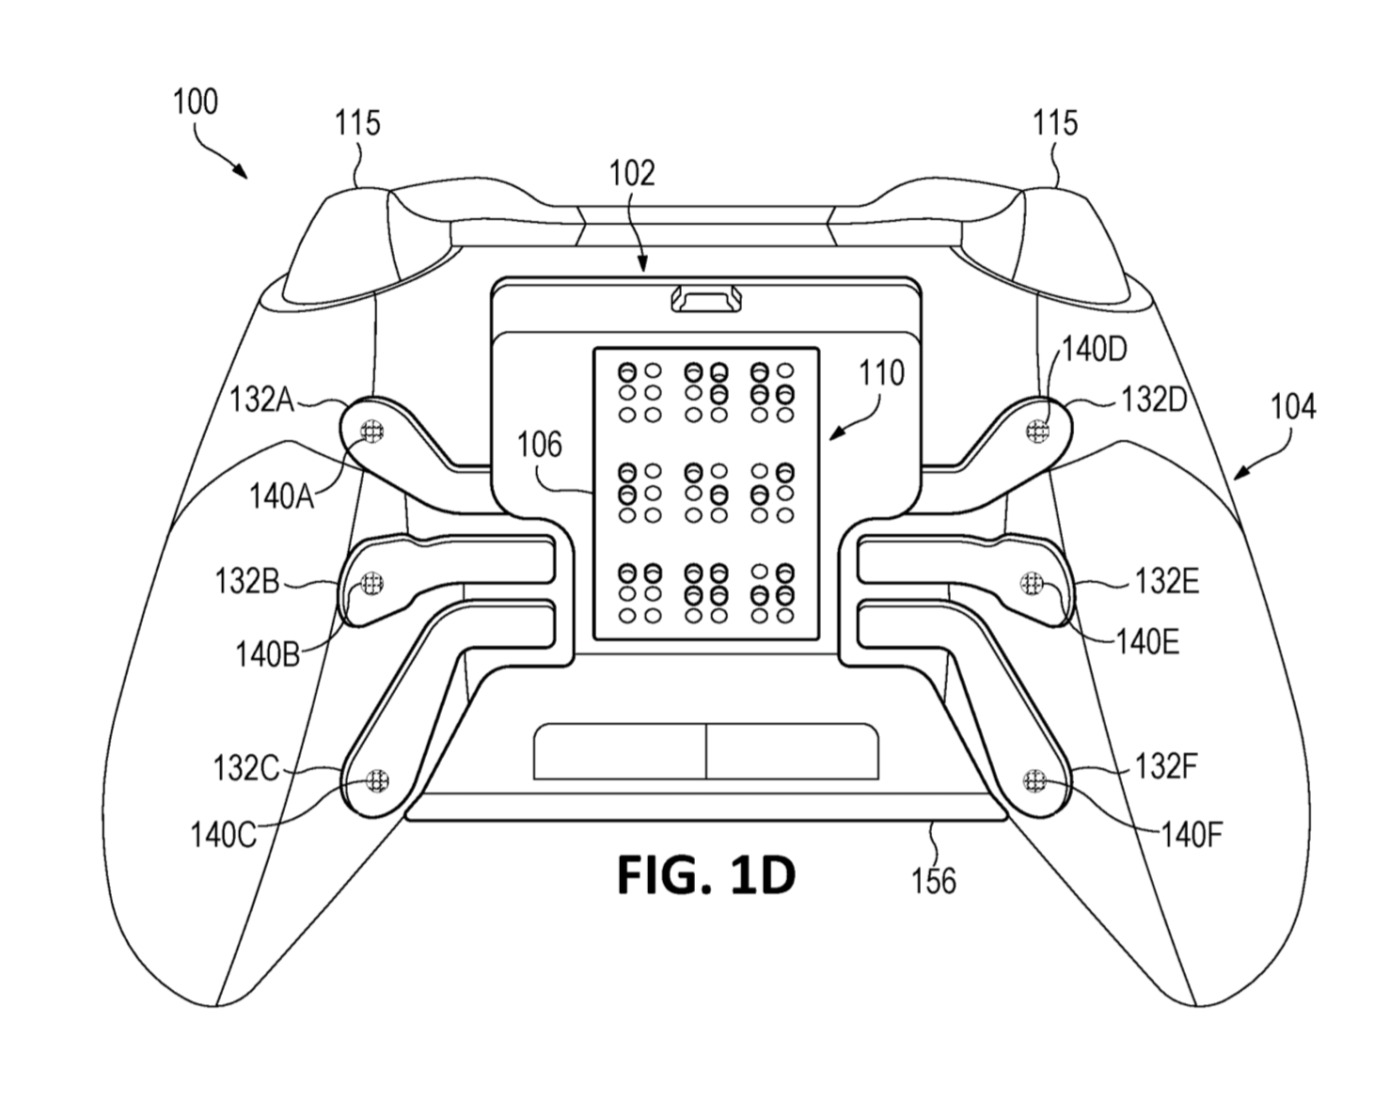 Xbox One Diagram - Wiring Diagrams Place